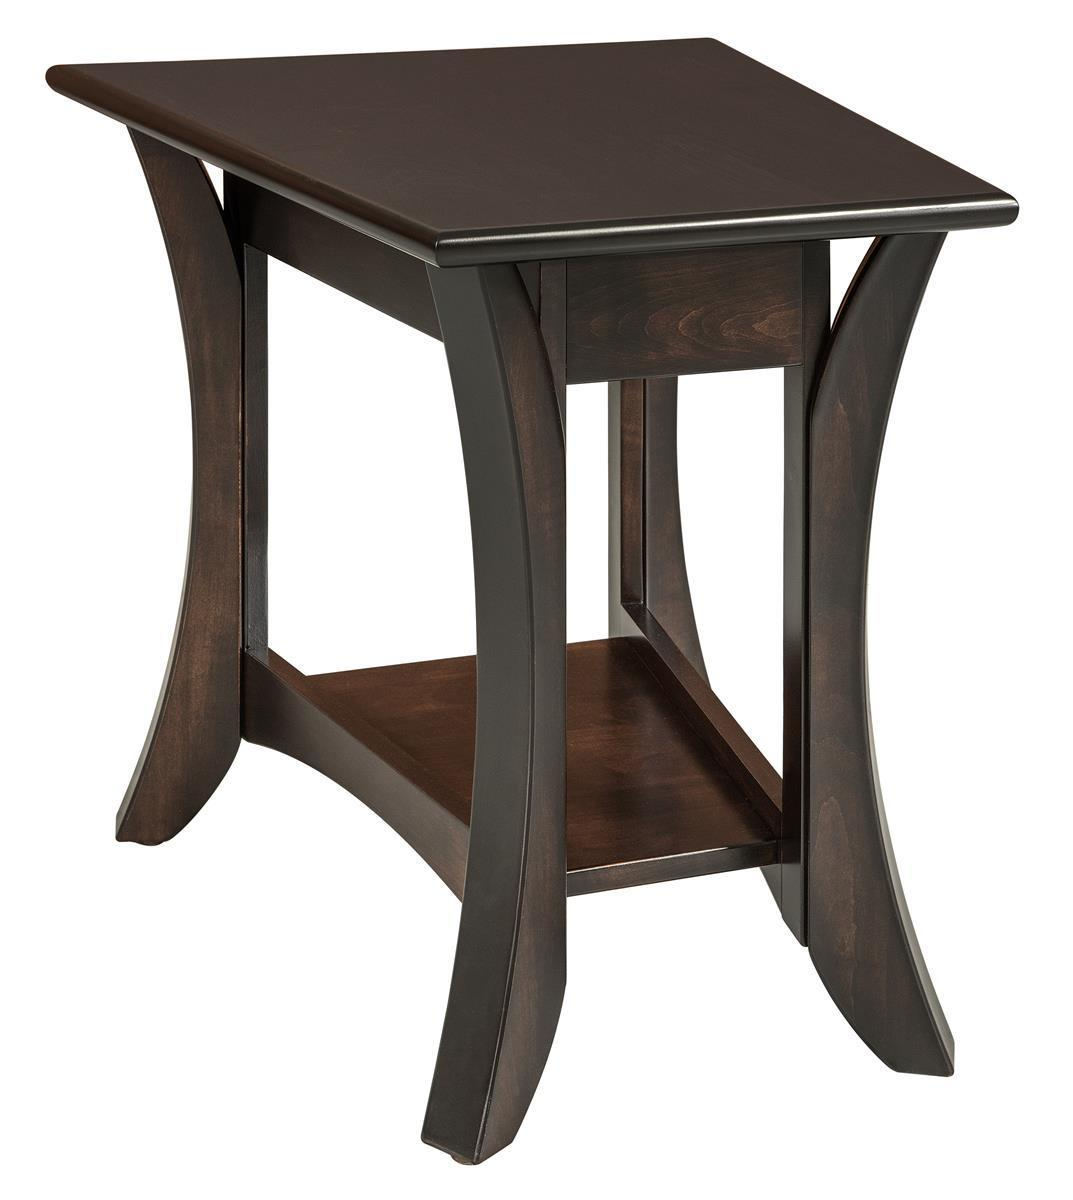 Catalina Wedge Shaped End Table From Dutchcrafters Amish Furniture